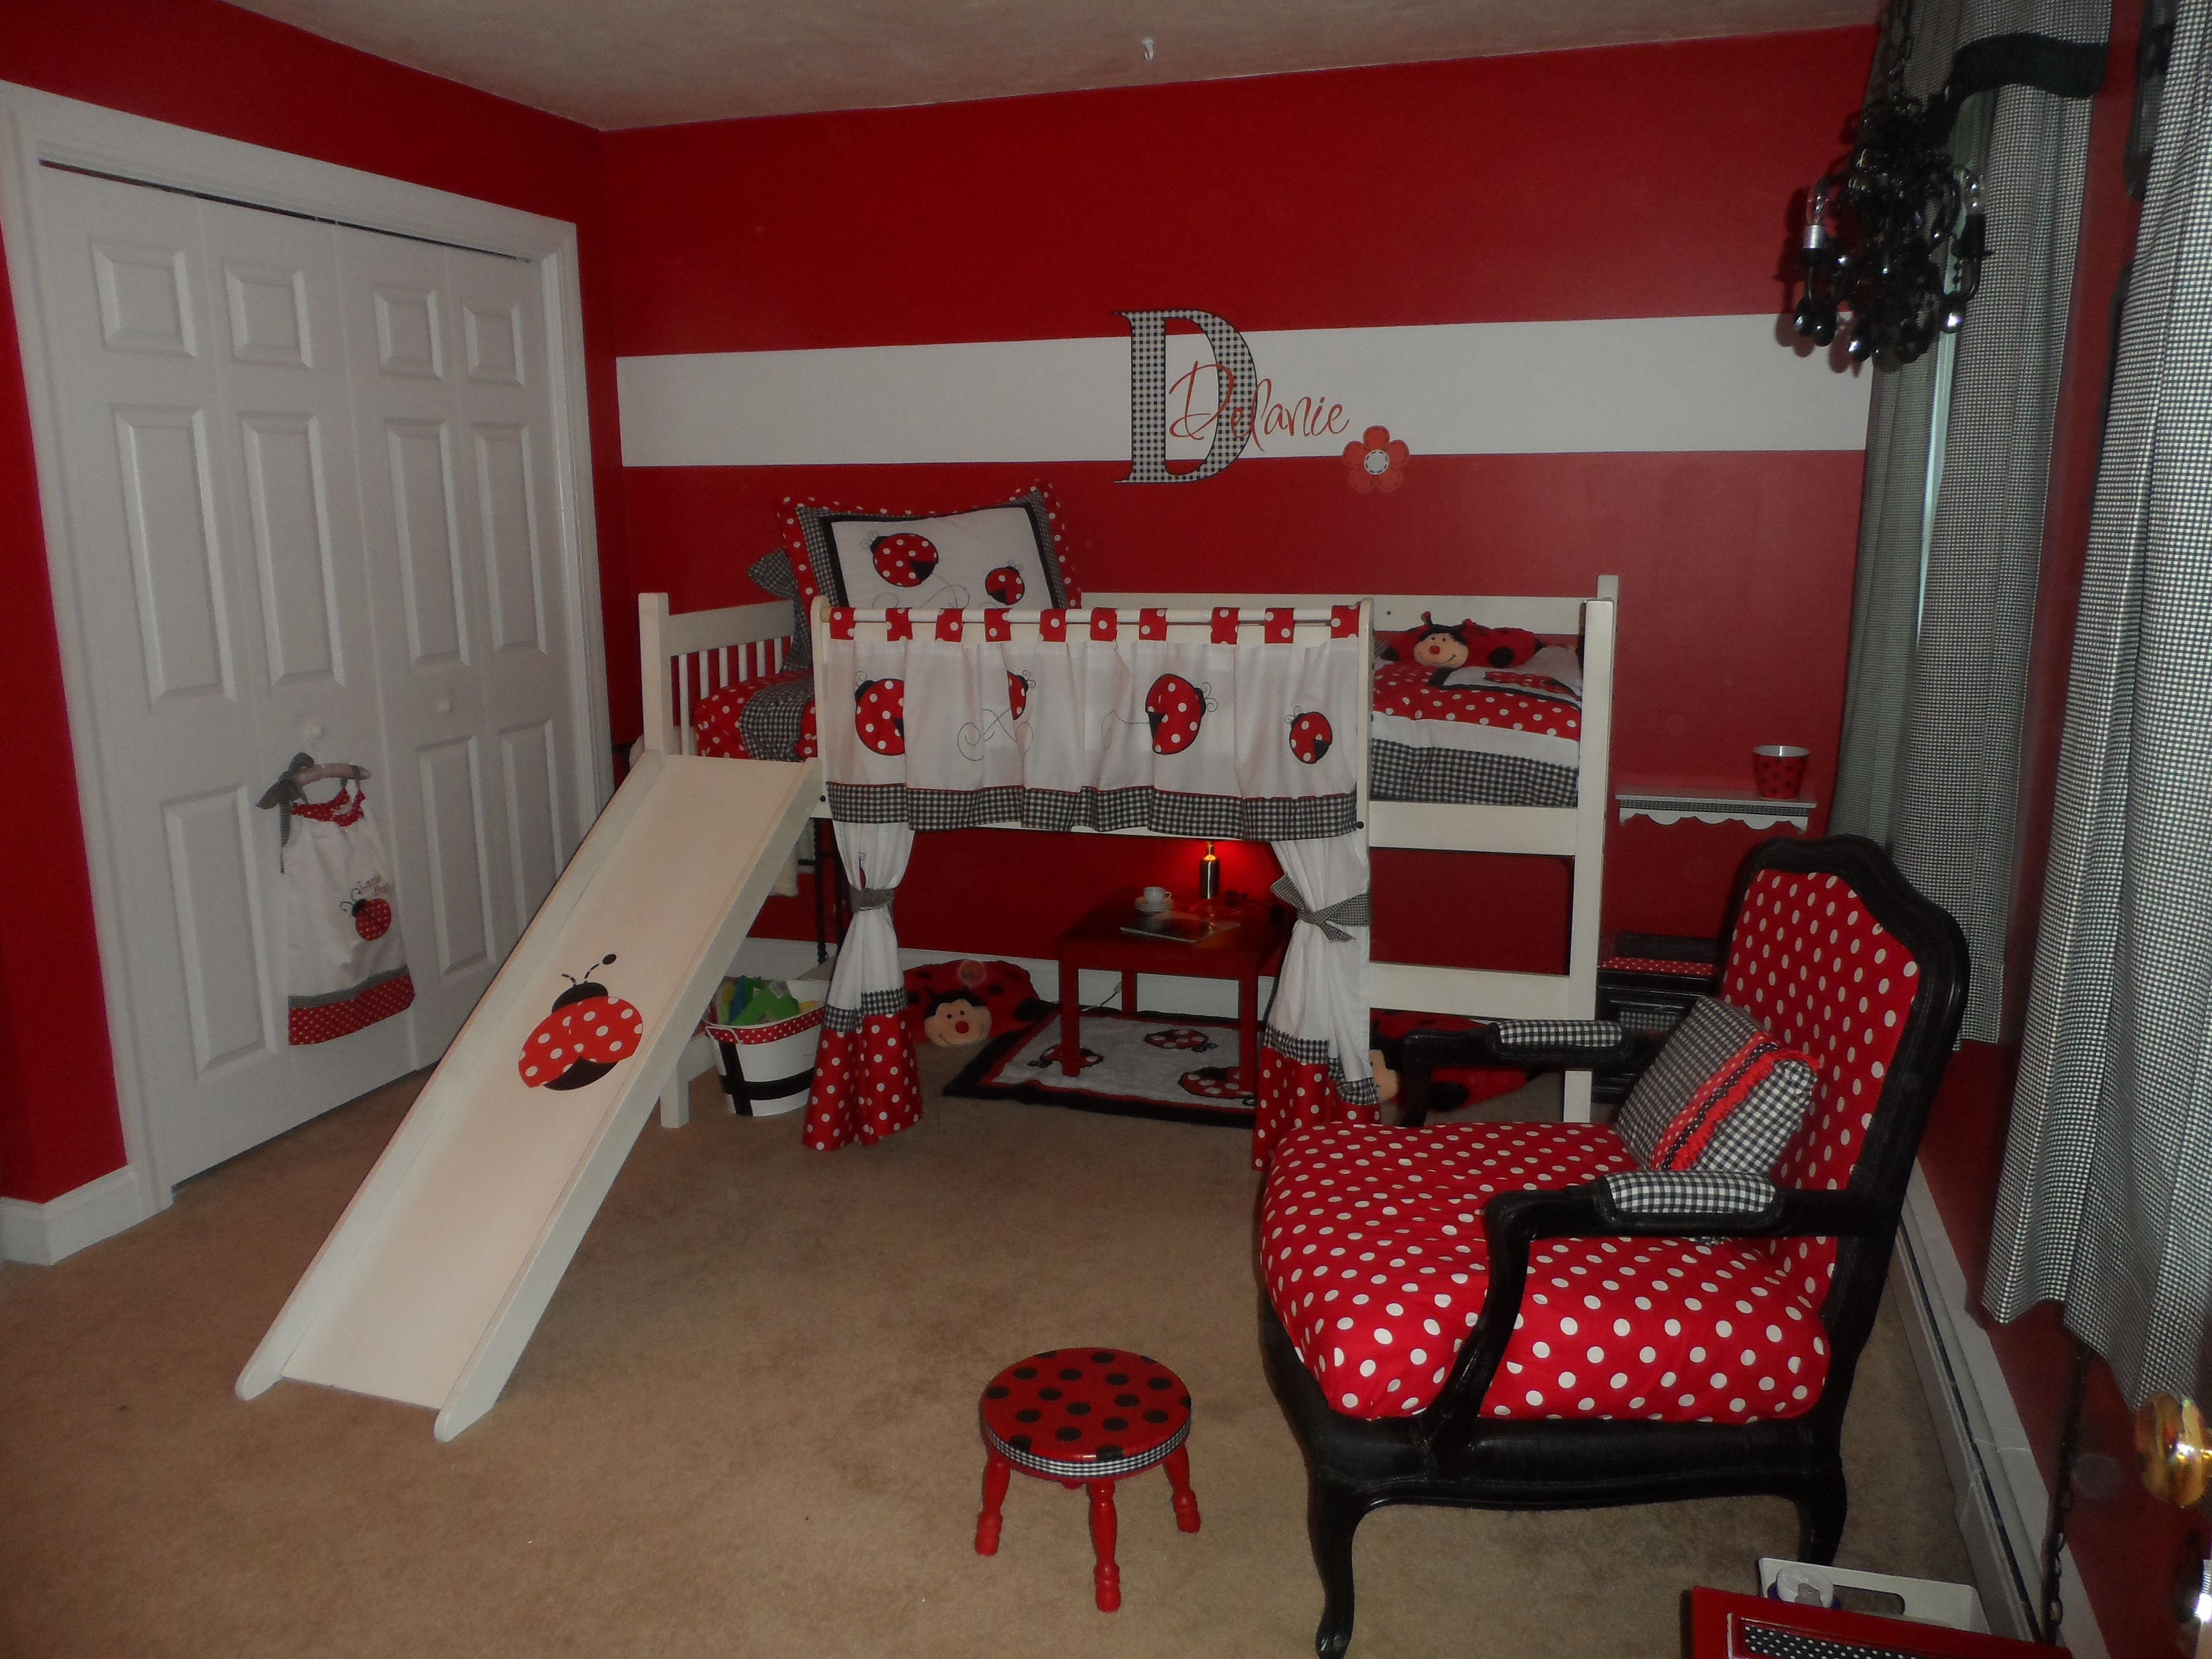 Ladybug Girl Bedroom  Ladybug house, Ladybug bedroom, Girls dream